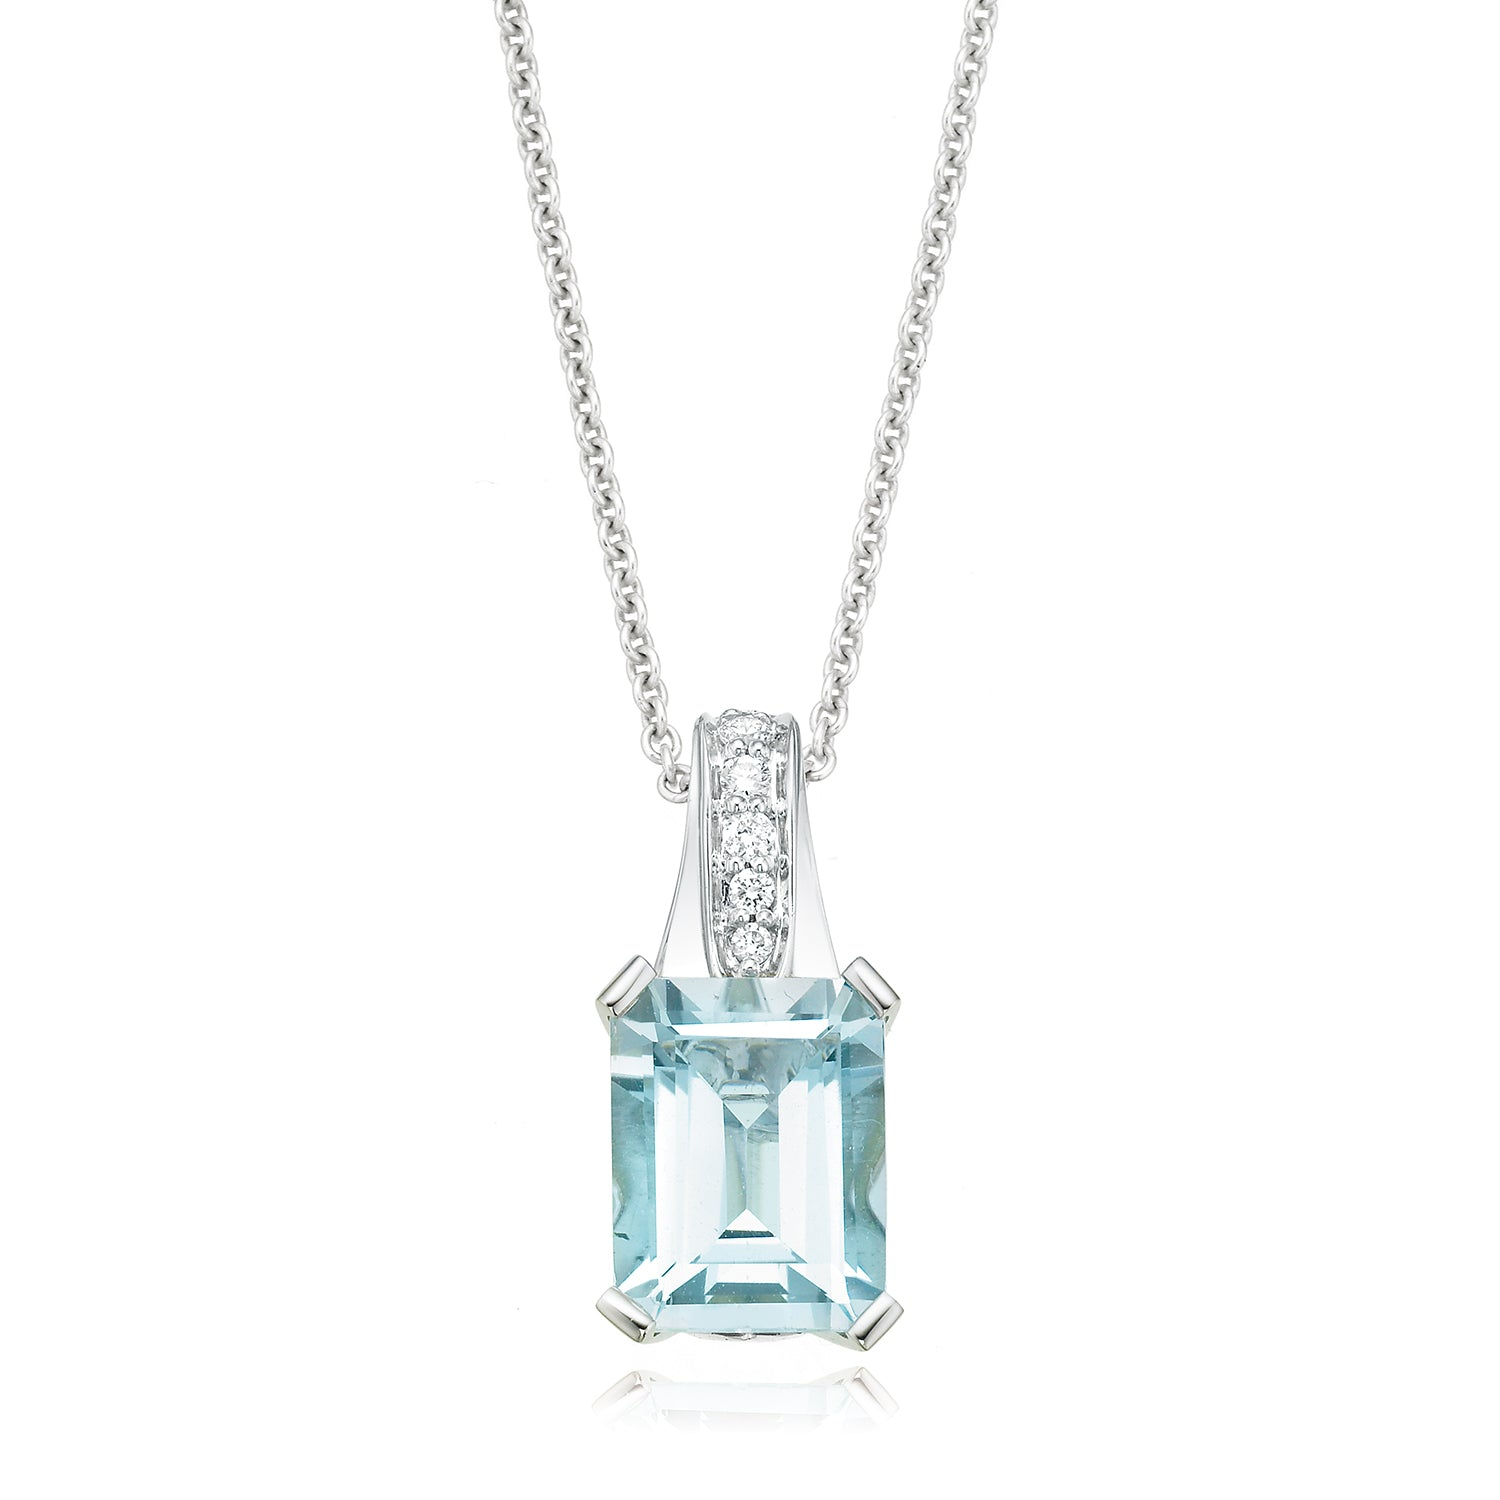 18ct White Gold Emerald Cut Aquamarine Diamond Pendant Set